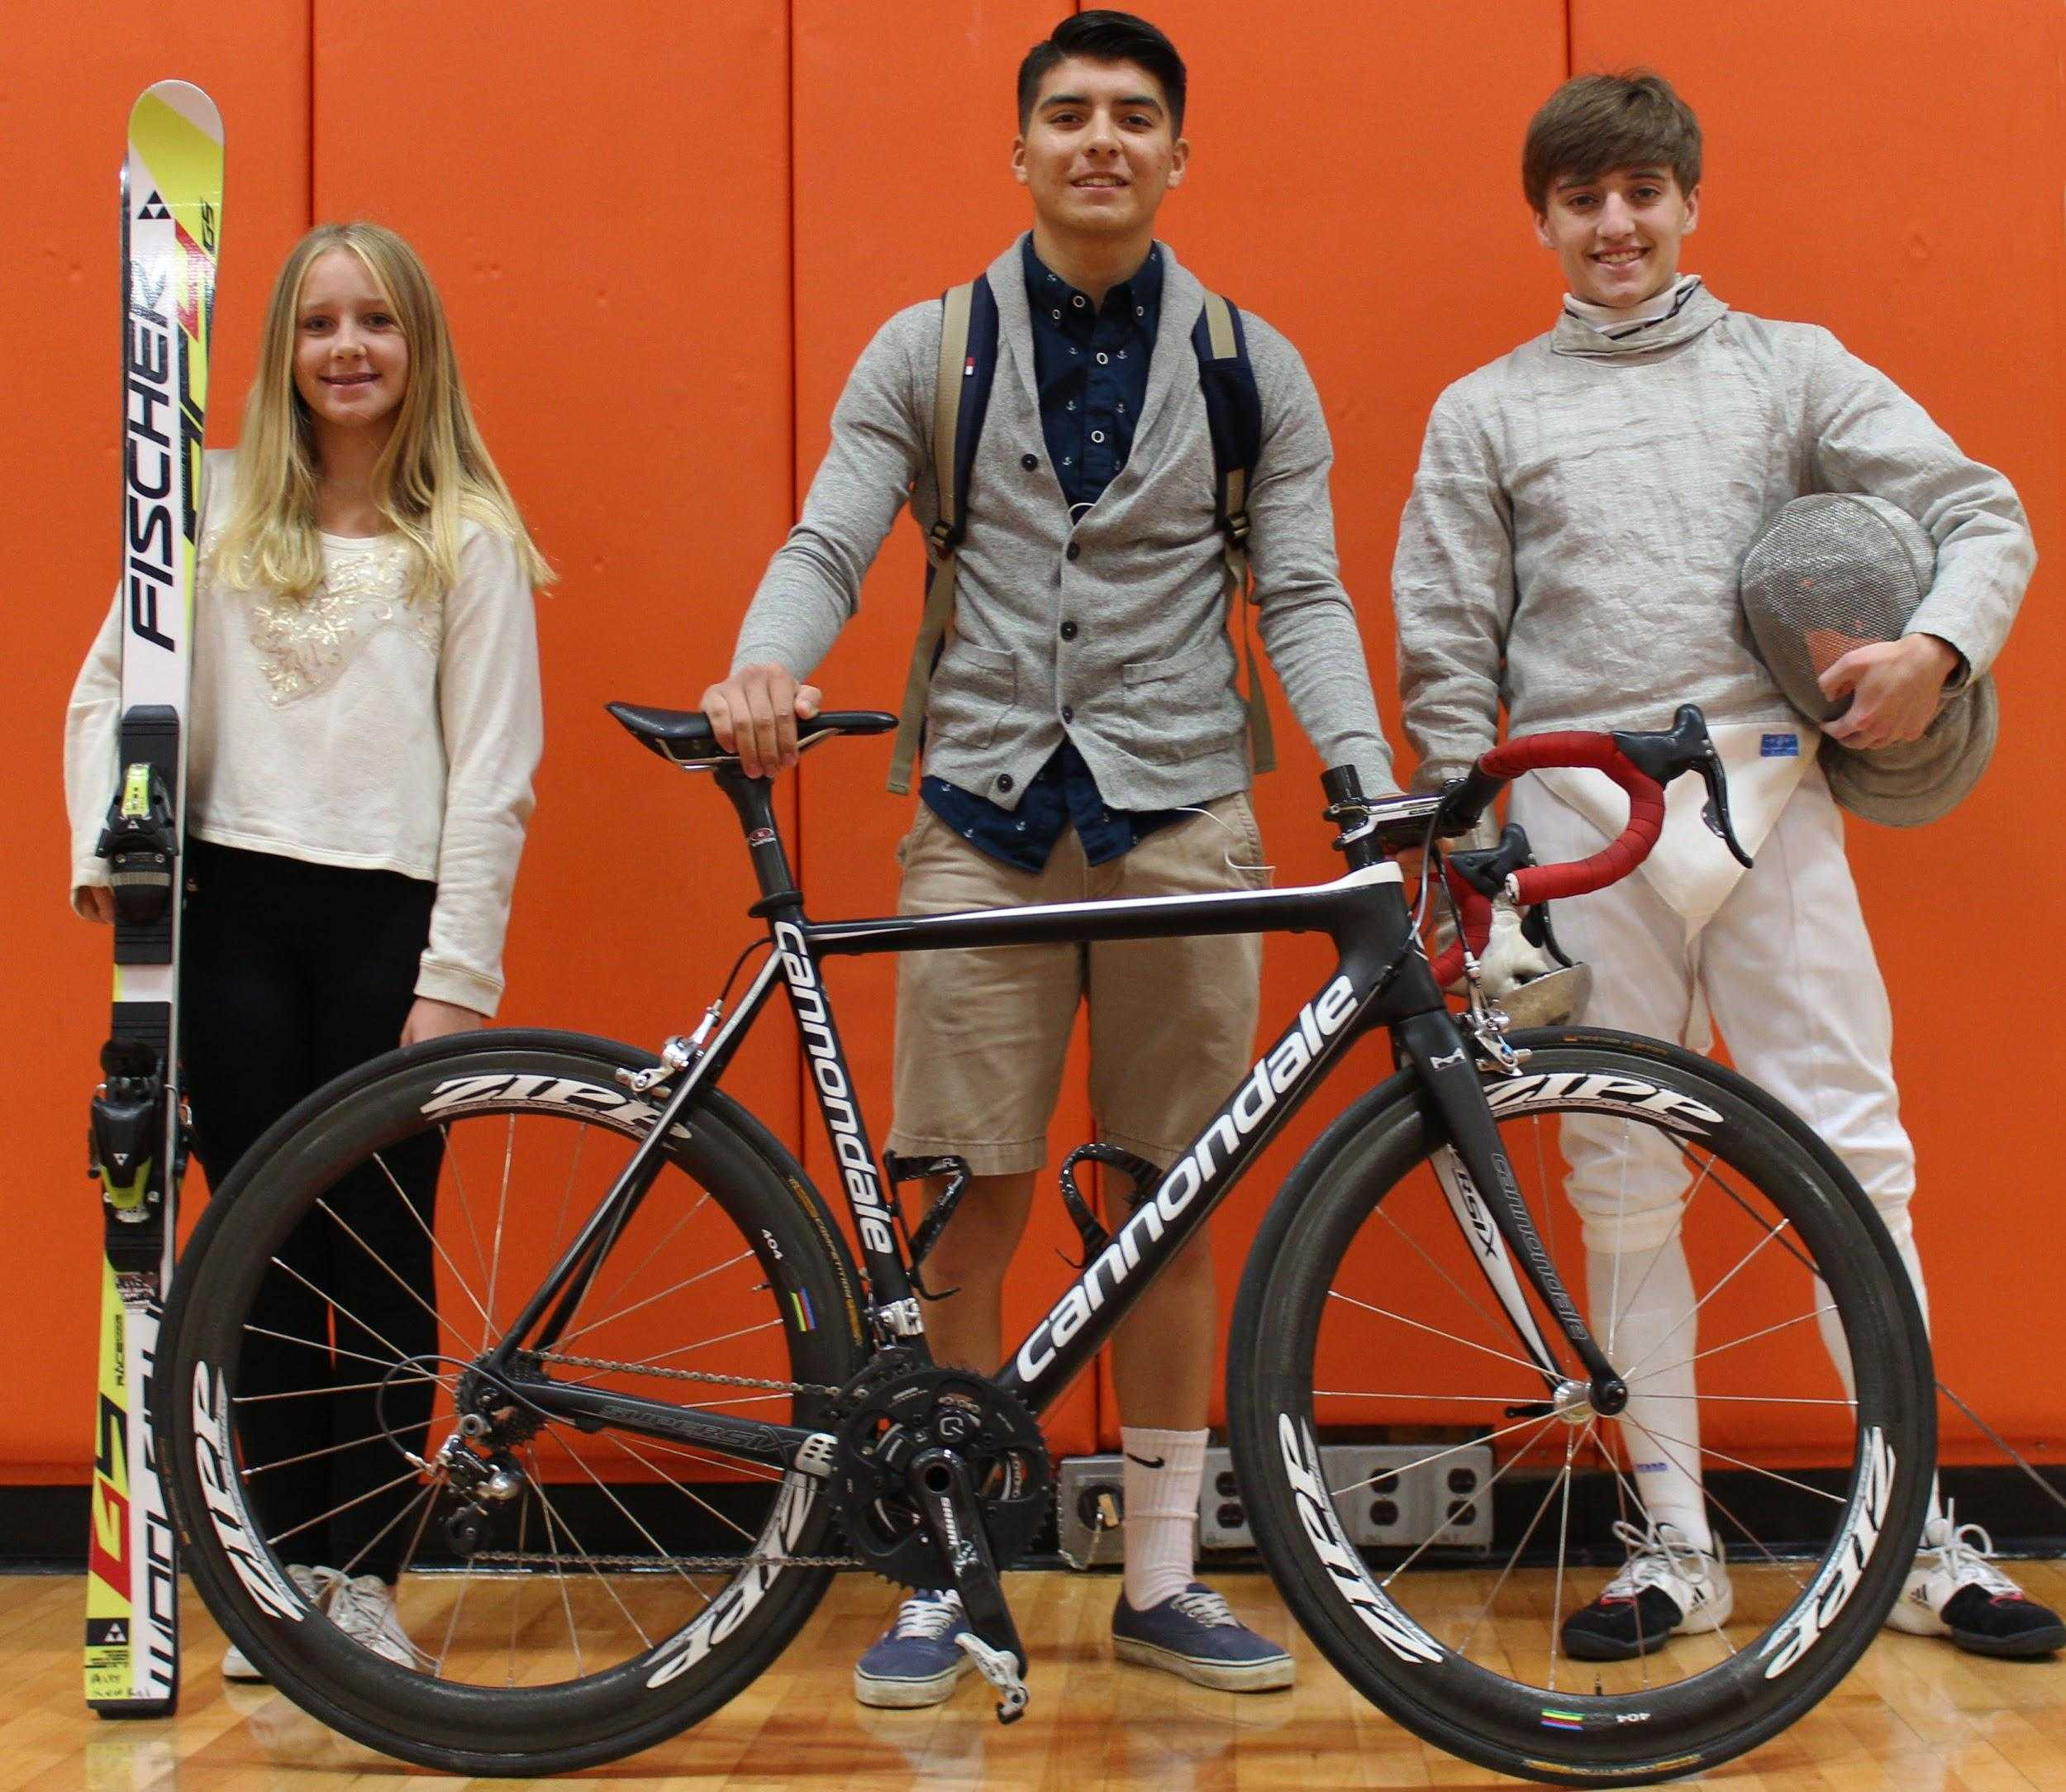 Ally Kunkel (left), Dante Parra (middle), and Brian Lemay (right) are three unique athletes and LHS students  that participate in skiing, cycling, and fencing.